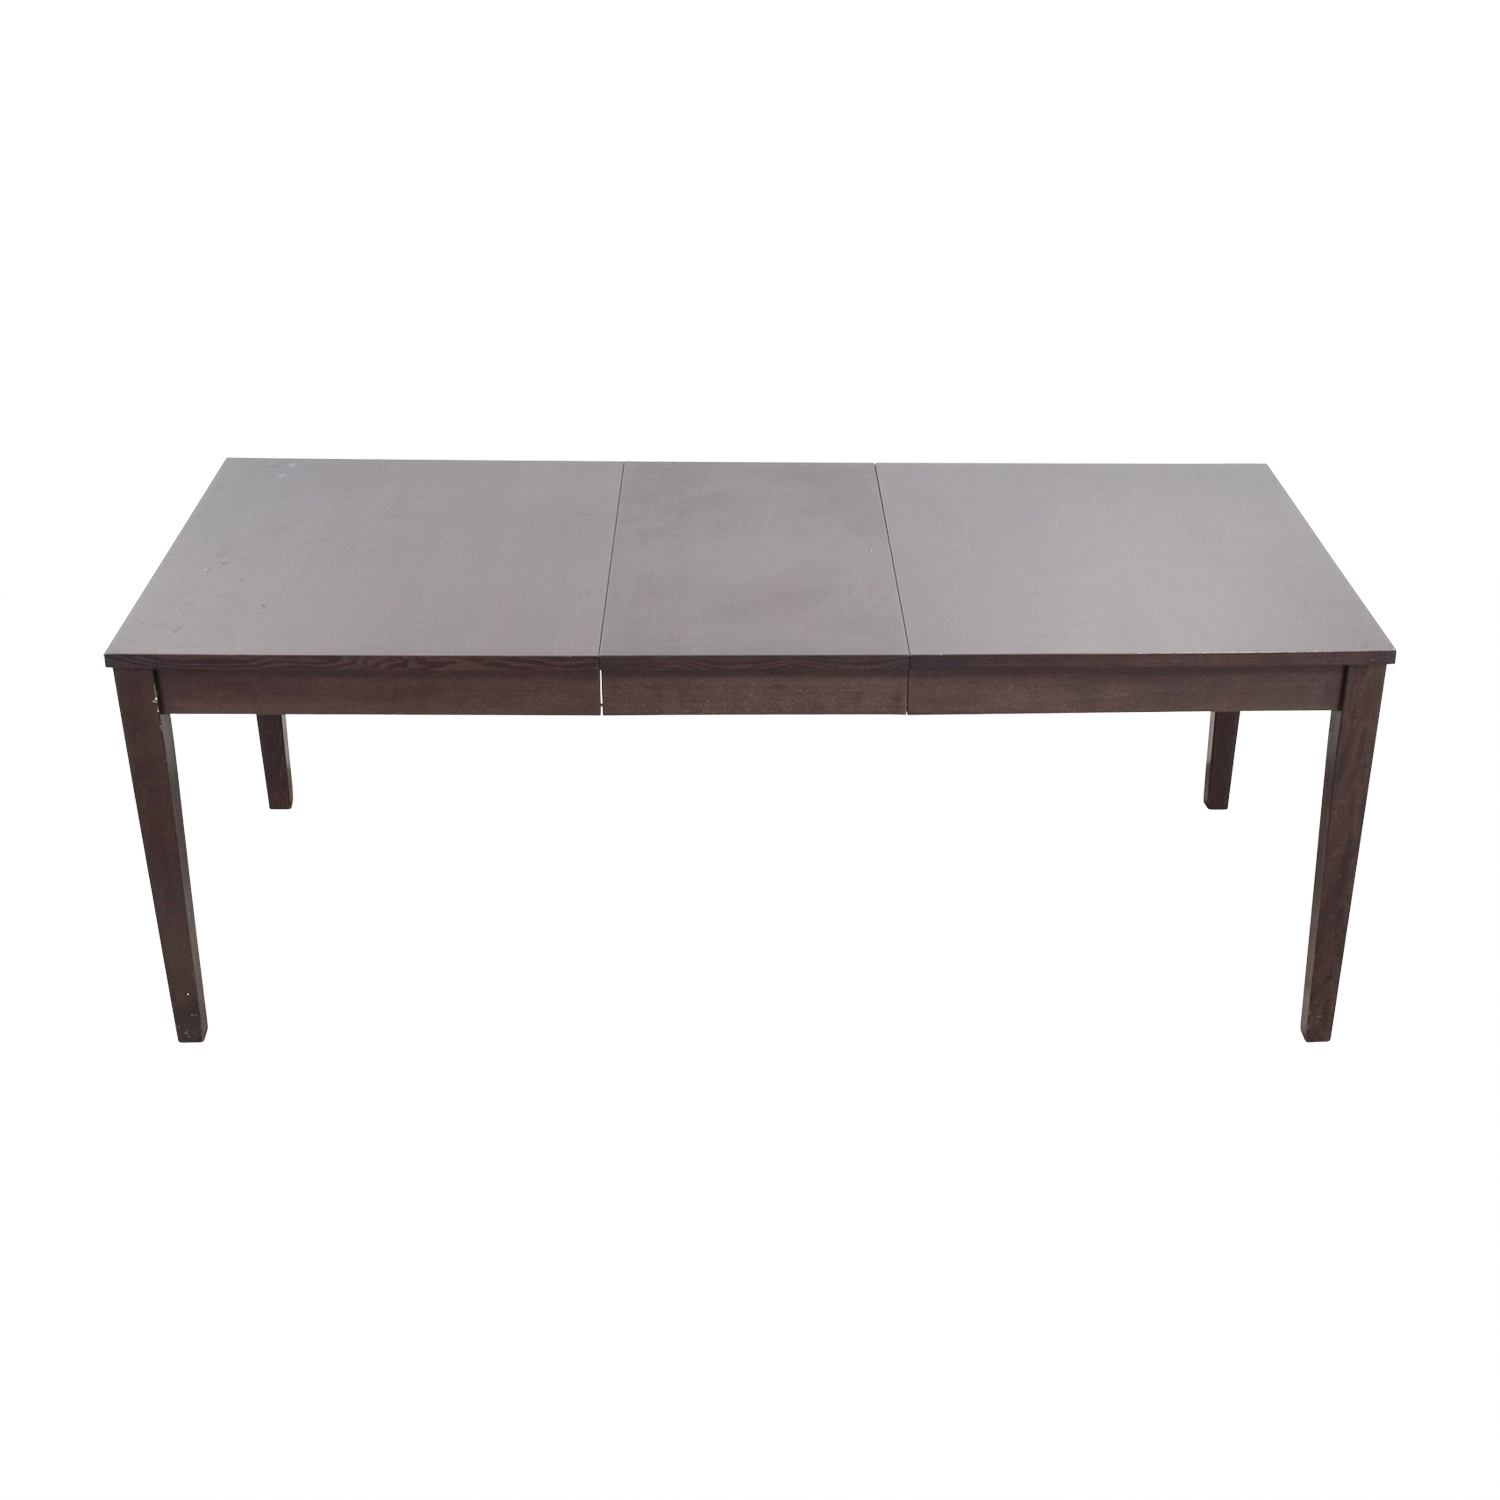 Crate & Barrel Crate & Barrel Extension Dining Table price